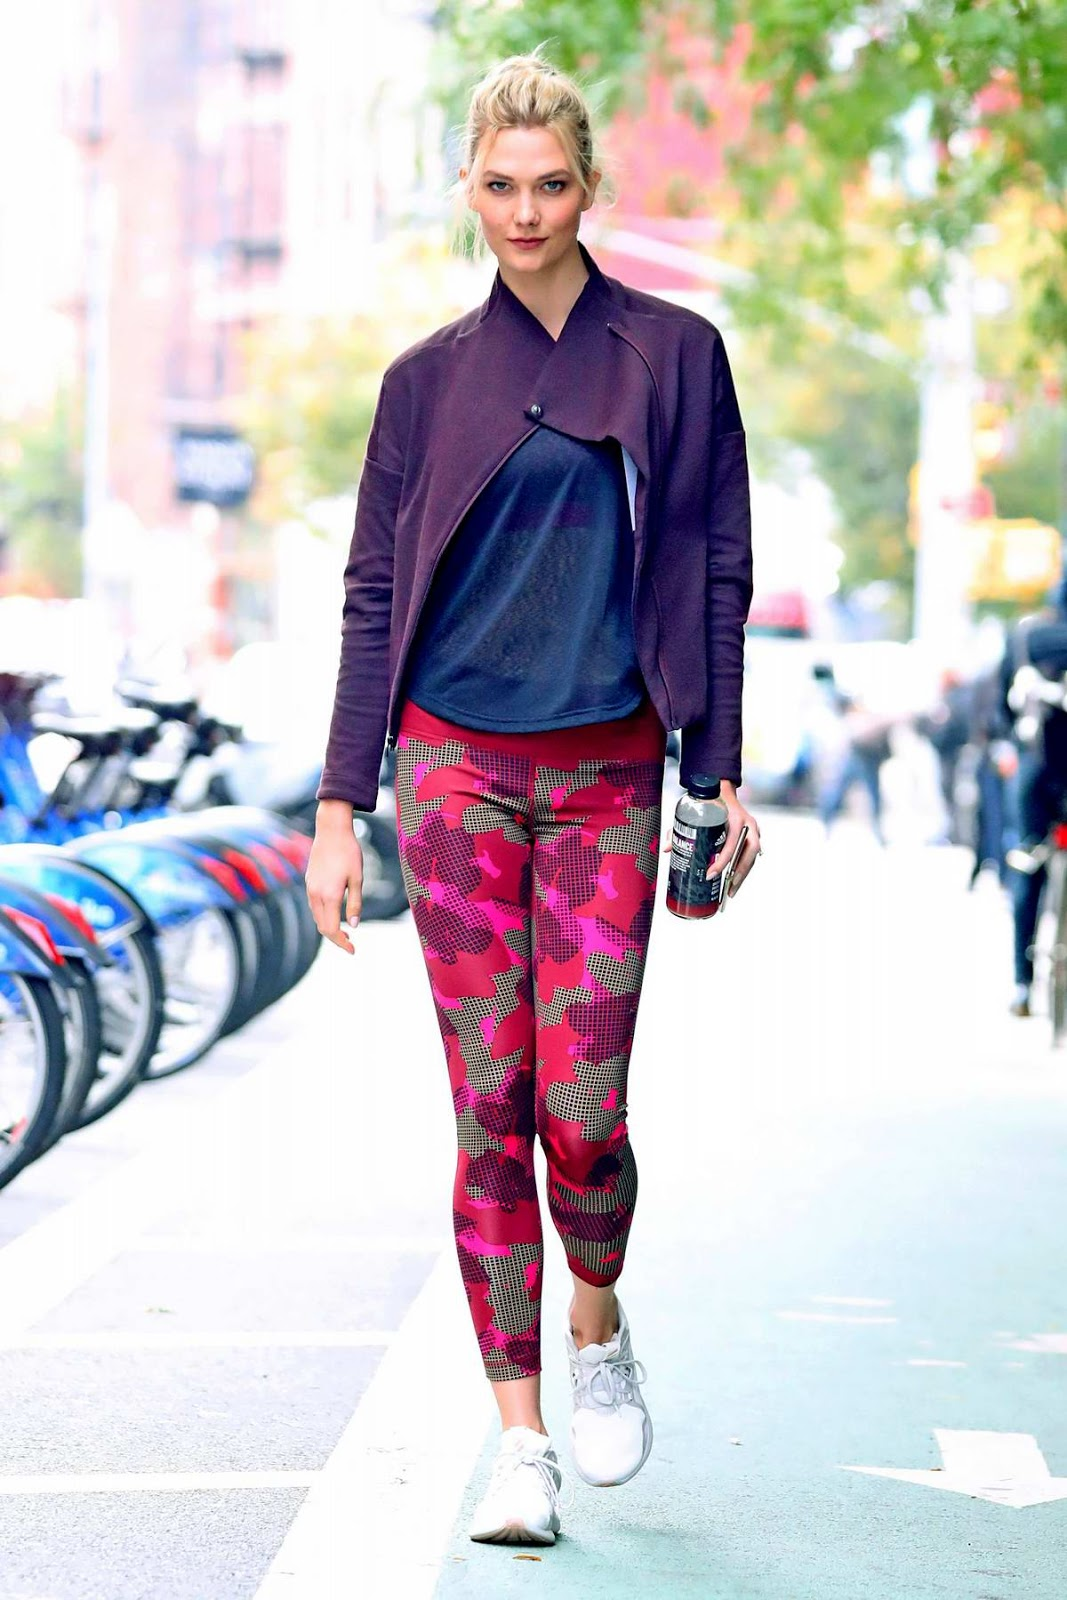 Karlie Kloss Style Out In Adidas Workout Gear In New York City